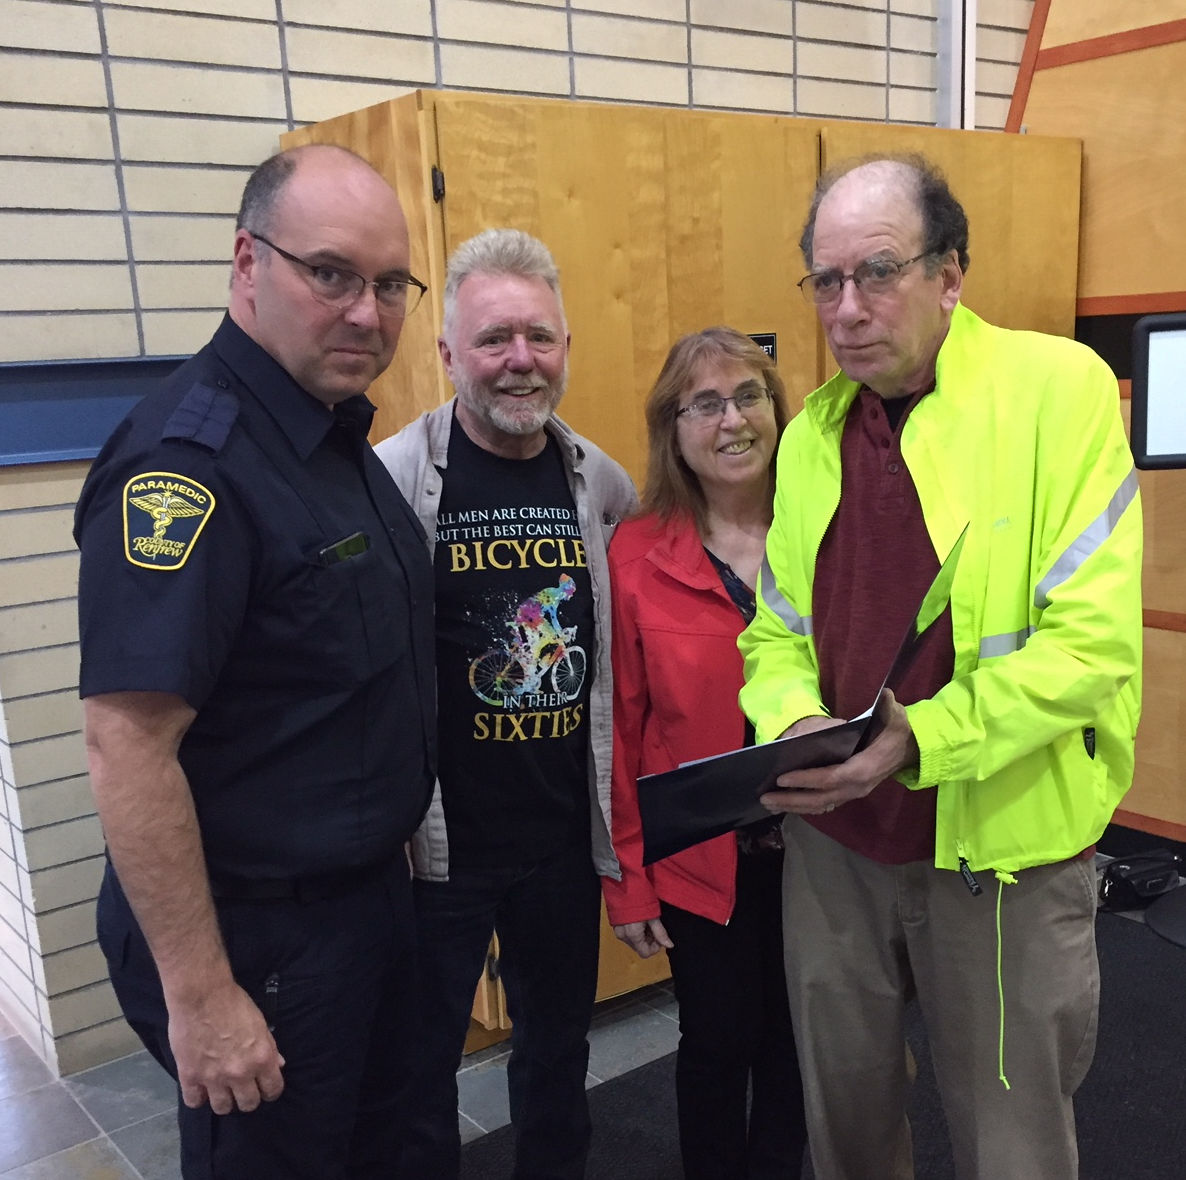 County of Renfrew Emergency Services director Mike Nolan and OVCATA activists Chris Hinsperger, Kathy Eisner, and Ish Theilheimer go over plans for Active Transportation Month.